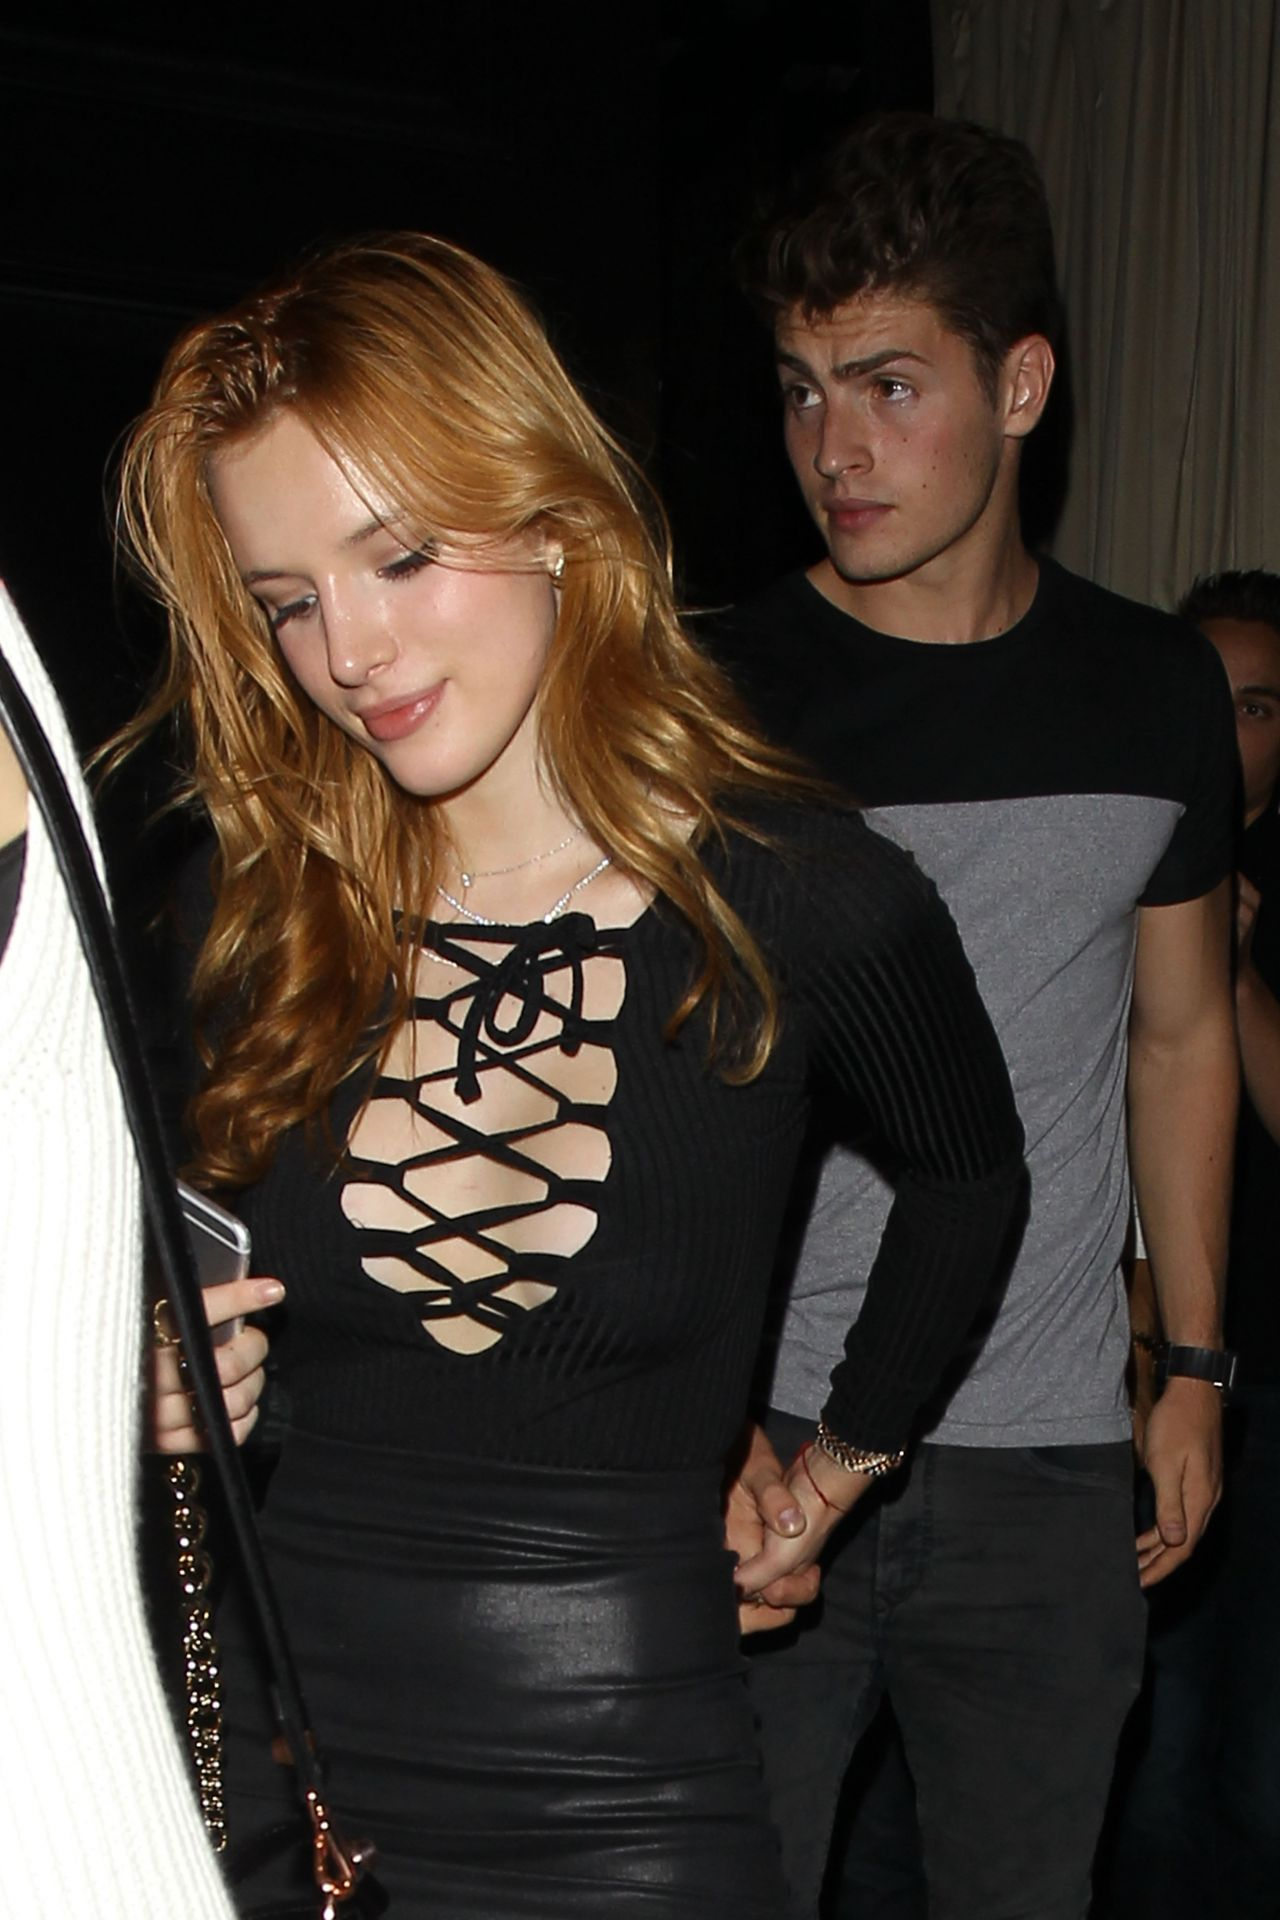 bella-thorne-leaving-beso-restaurant-in-hollywood-october-2015_18